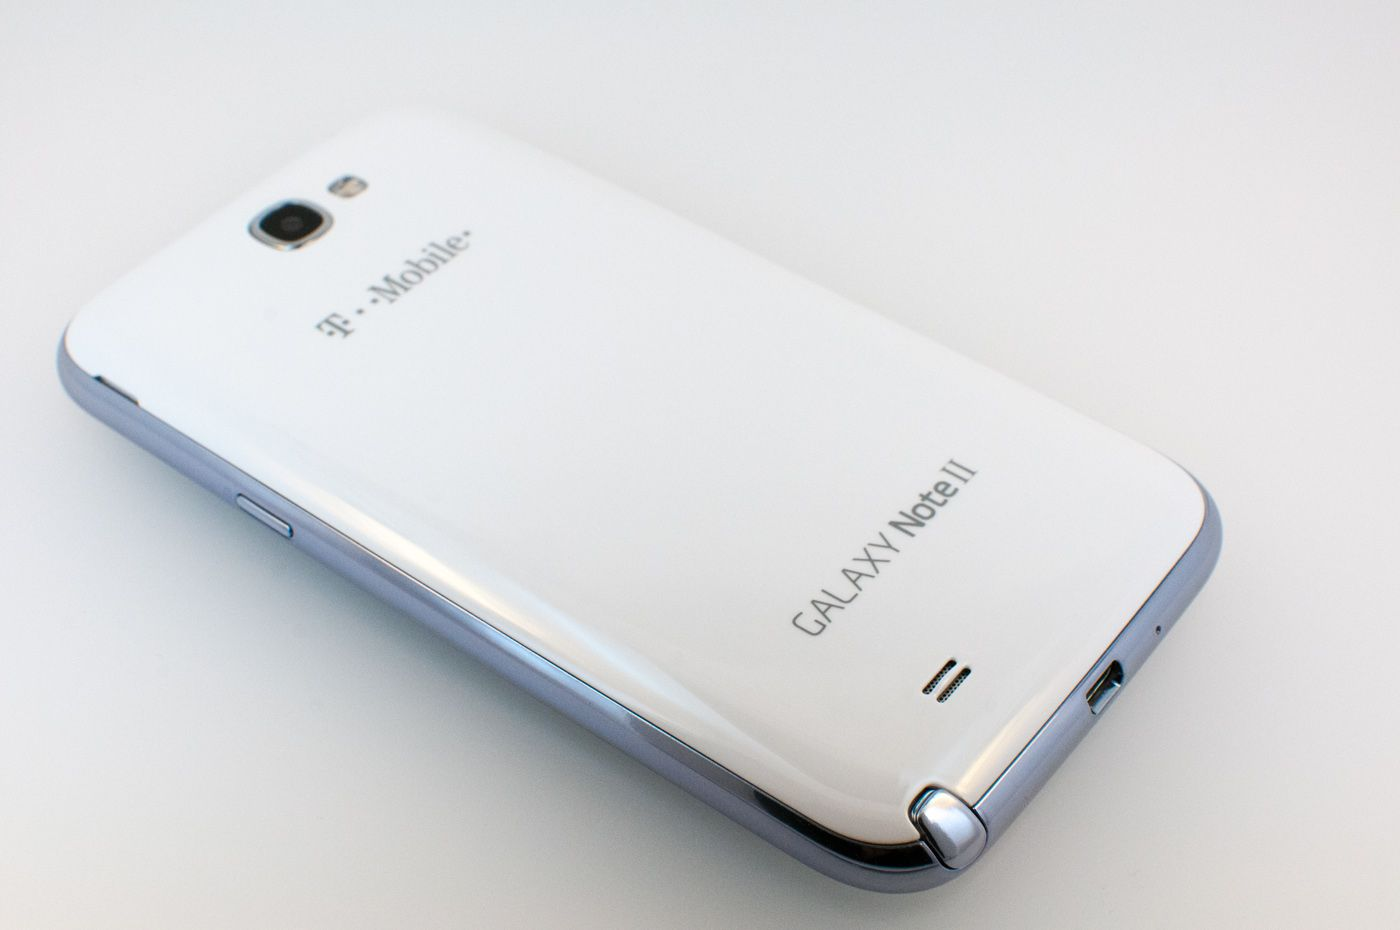 Install Android 5 0 2 Cm 12 Rom On Galaxy Note 2 All Variants